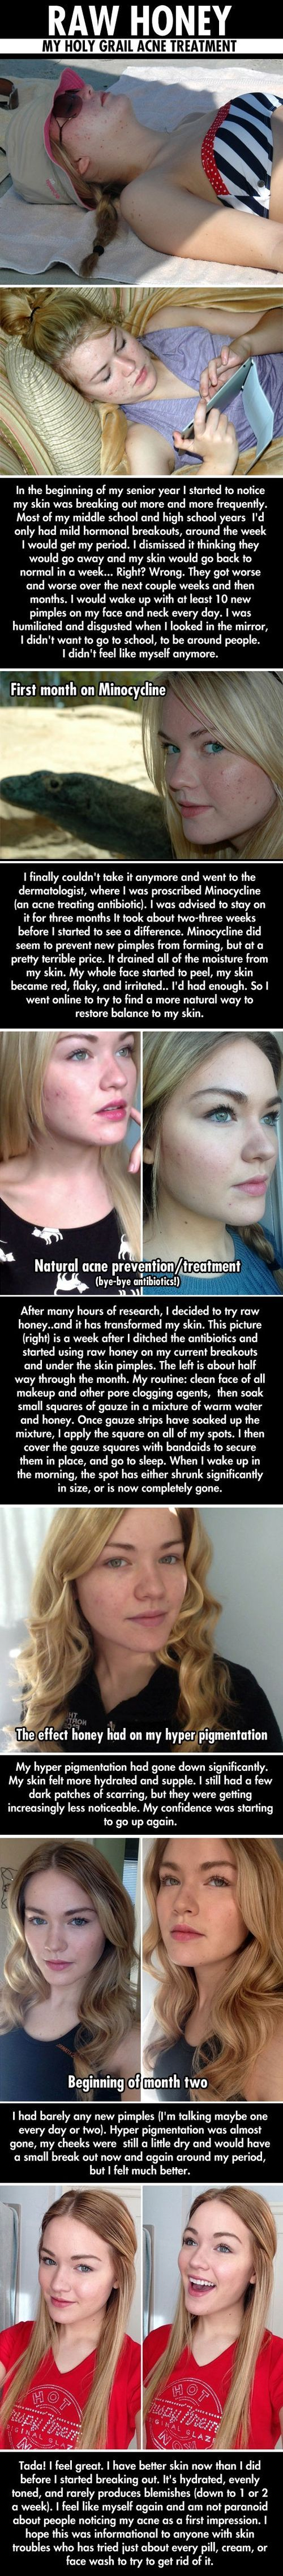 Interesting method for using honey warm water to lessen acne and hyper pigmentation. (GOOD TO KNOW!!!)